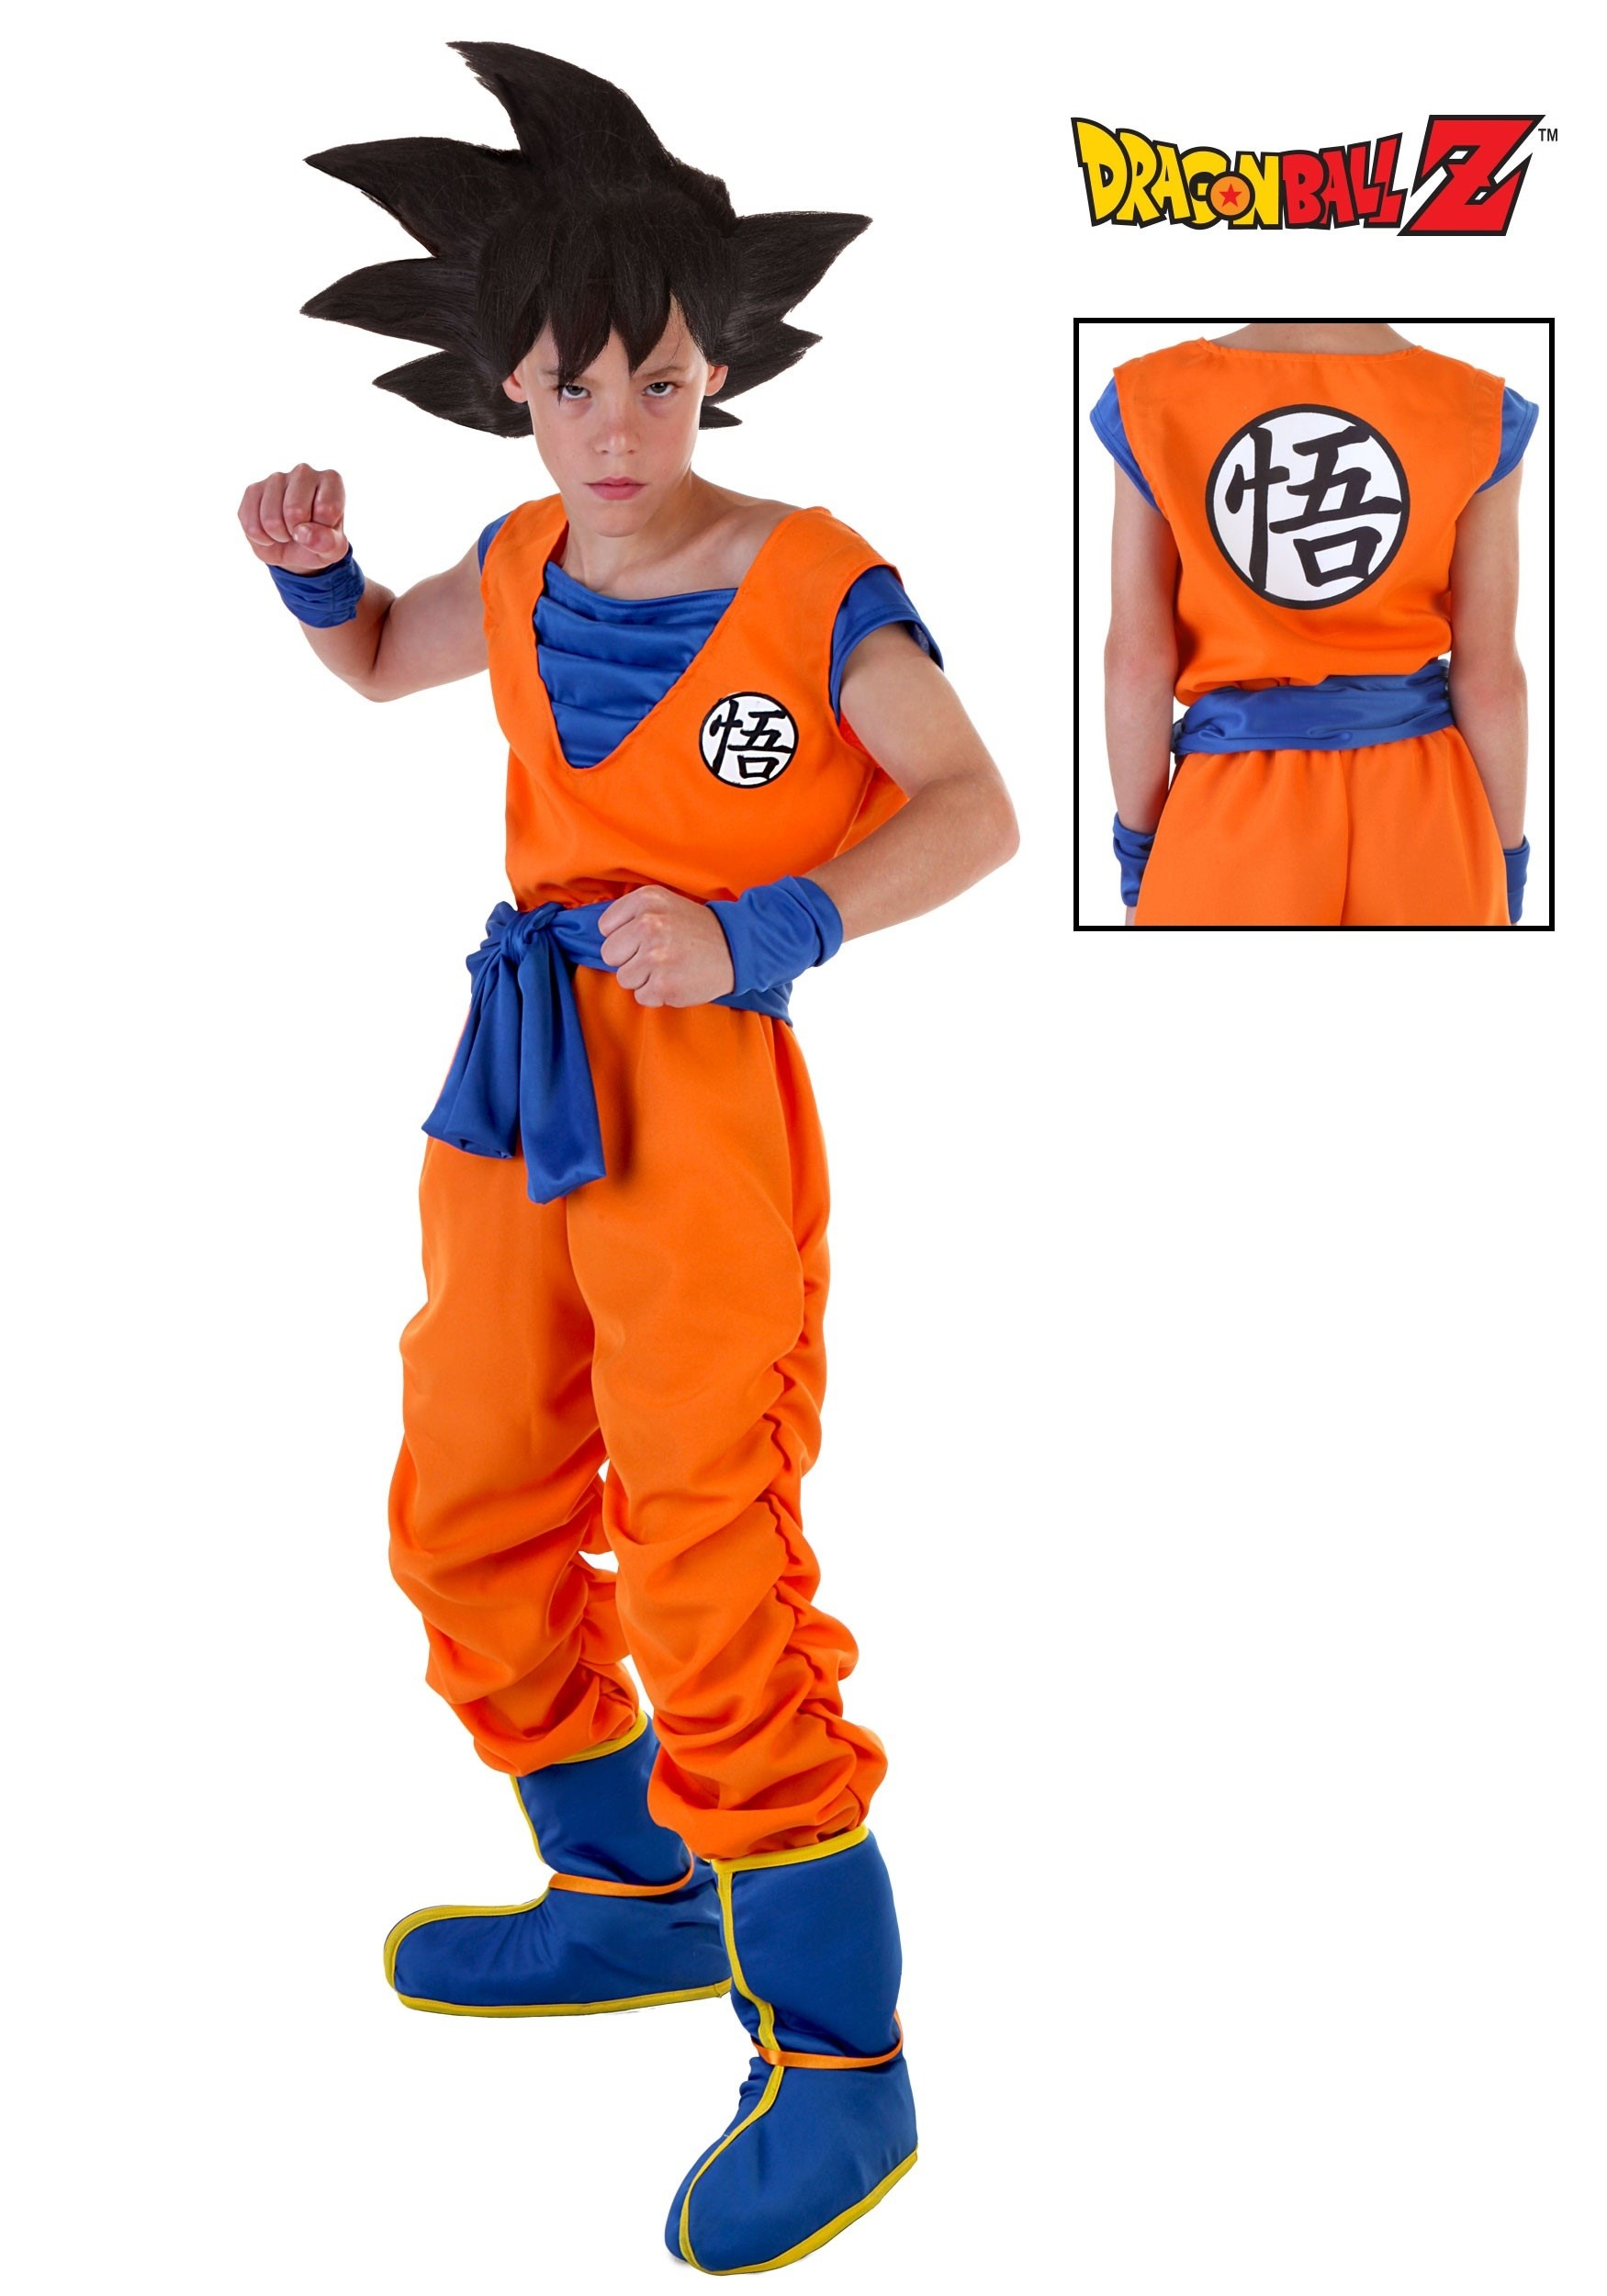 DBZ Child Goku Costume 1c2edca5c0c2